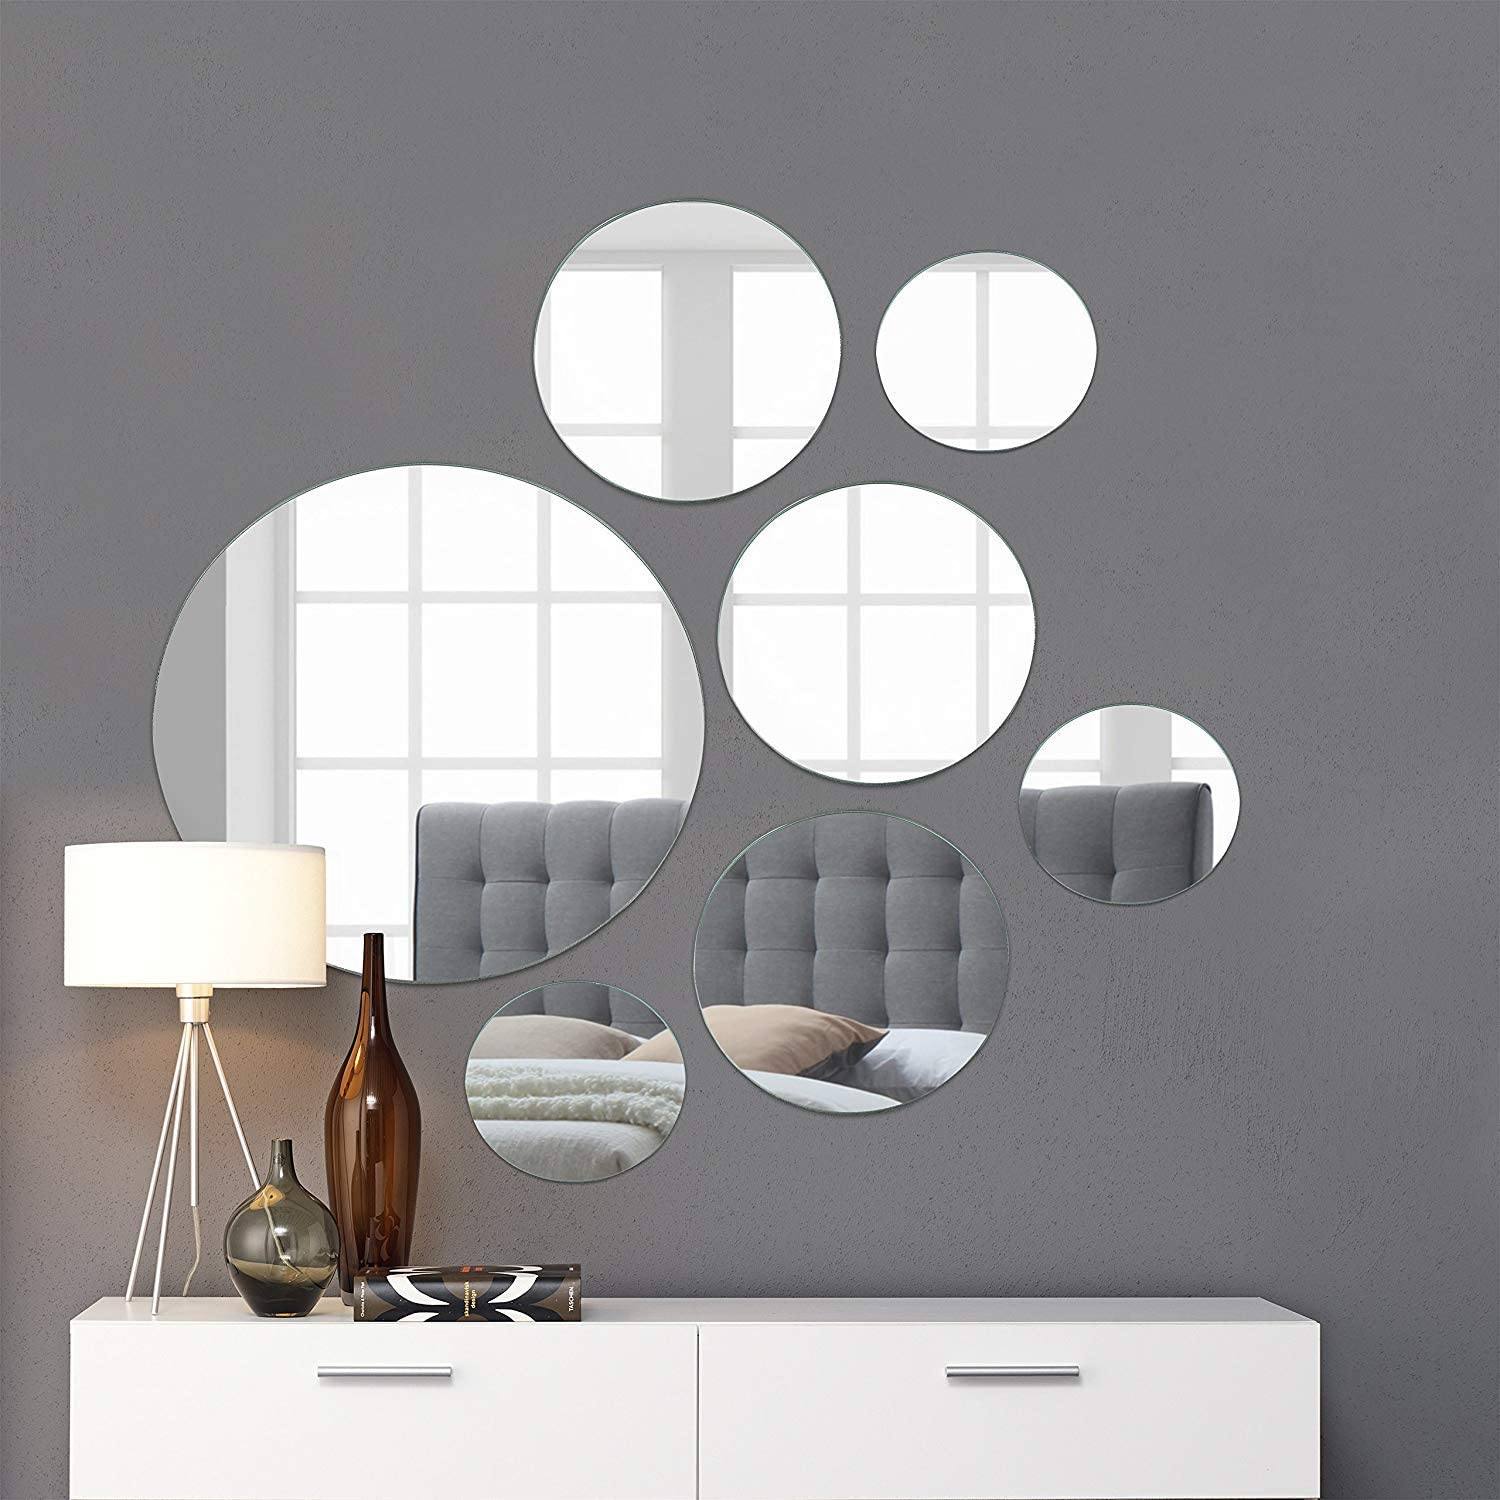 "Light In The Dark Large Round Mirror Wall Mounted Assorted Sizes (10x102"",  10x10"", 10x10"") - Set of 10 Round Glass Mirrors Wall Decoration for Living Room,"